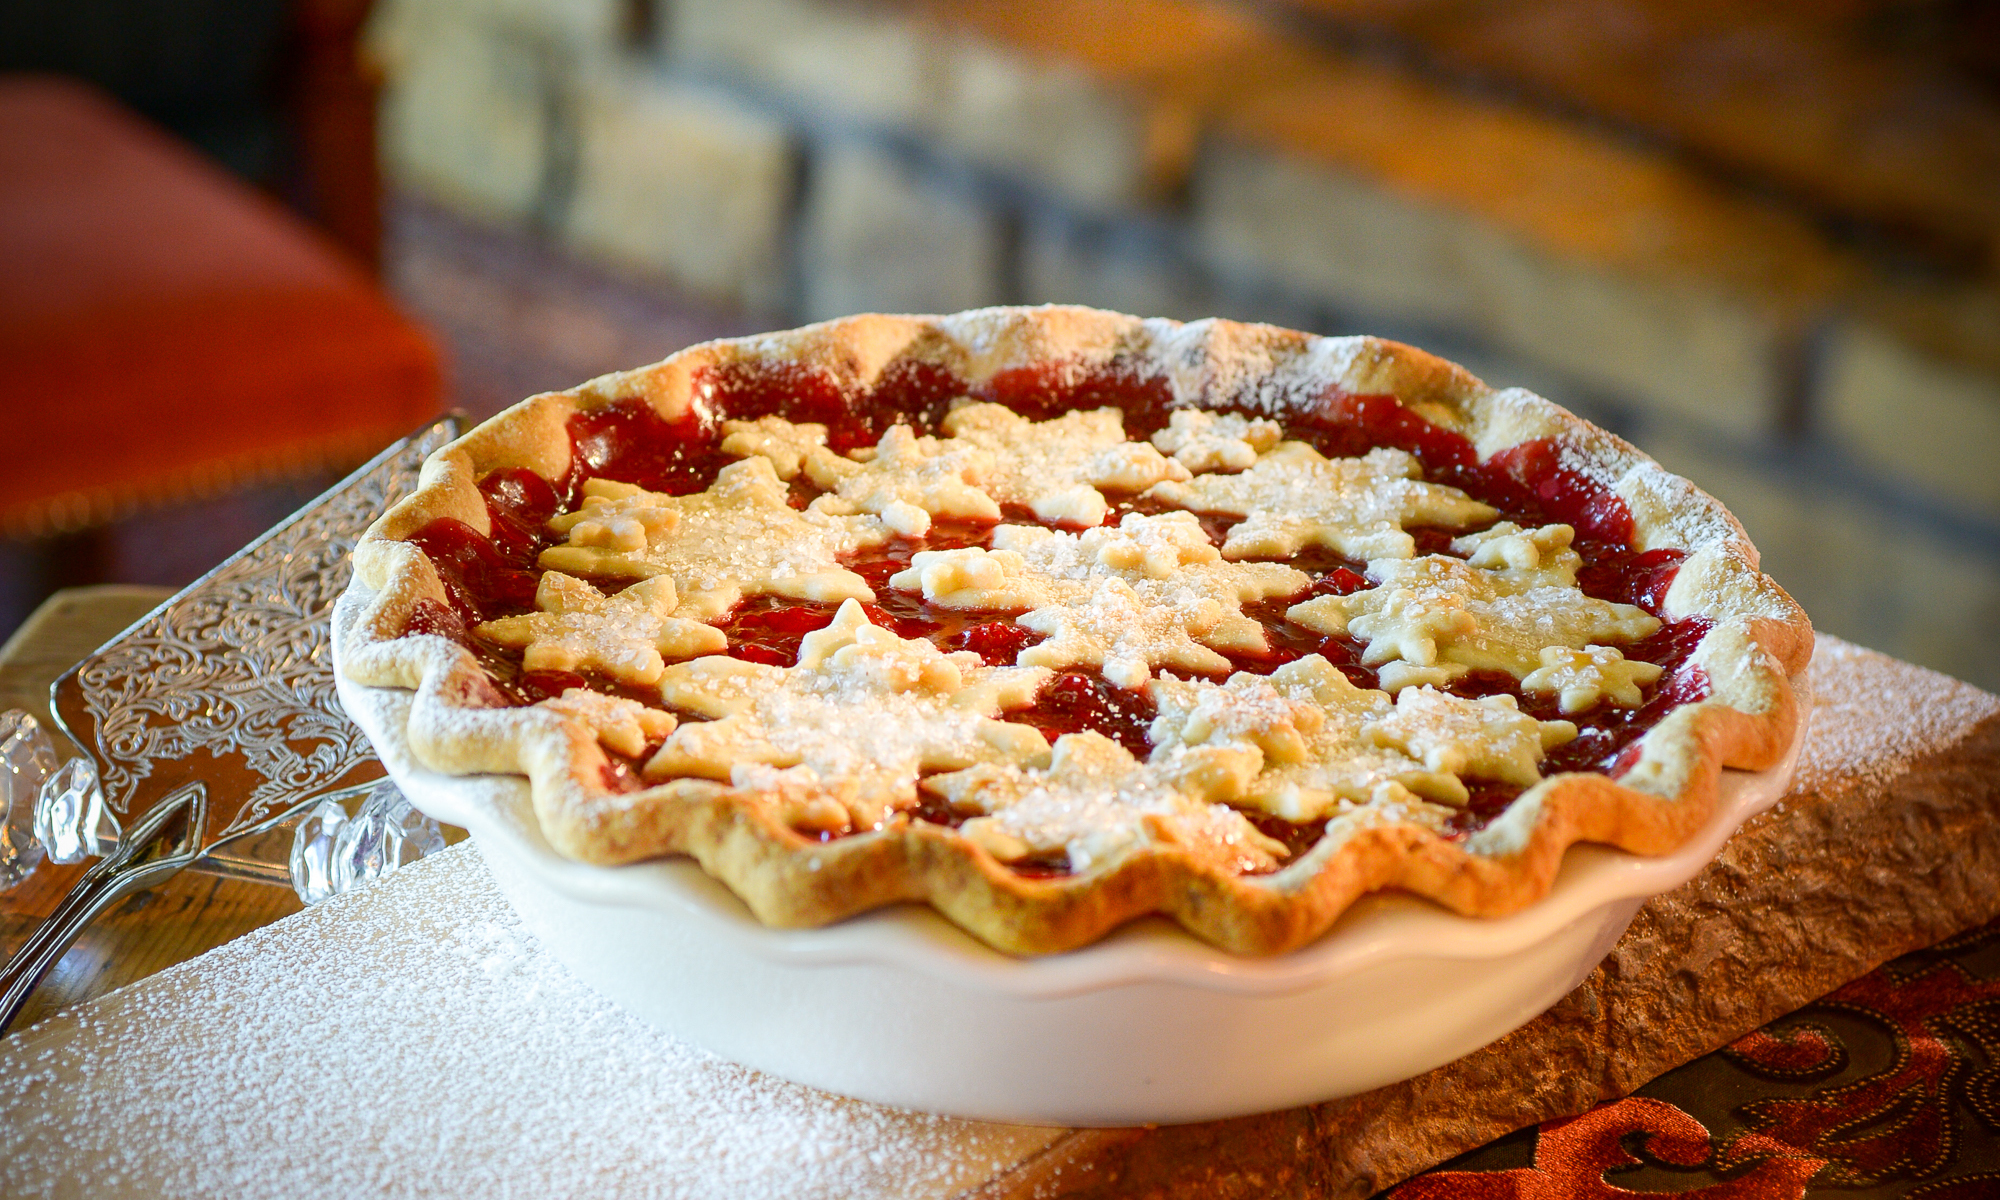 This recipe for Snowflake Cherry Pie is featured in the recently releasedChristmas in Homesteade-book, written by Kara Tate, fromHallmark Publishing. Perfect not only for Christmas, but year-round!